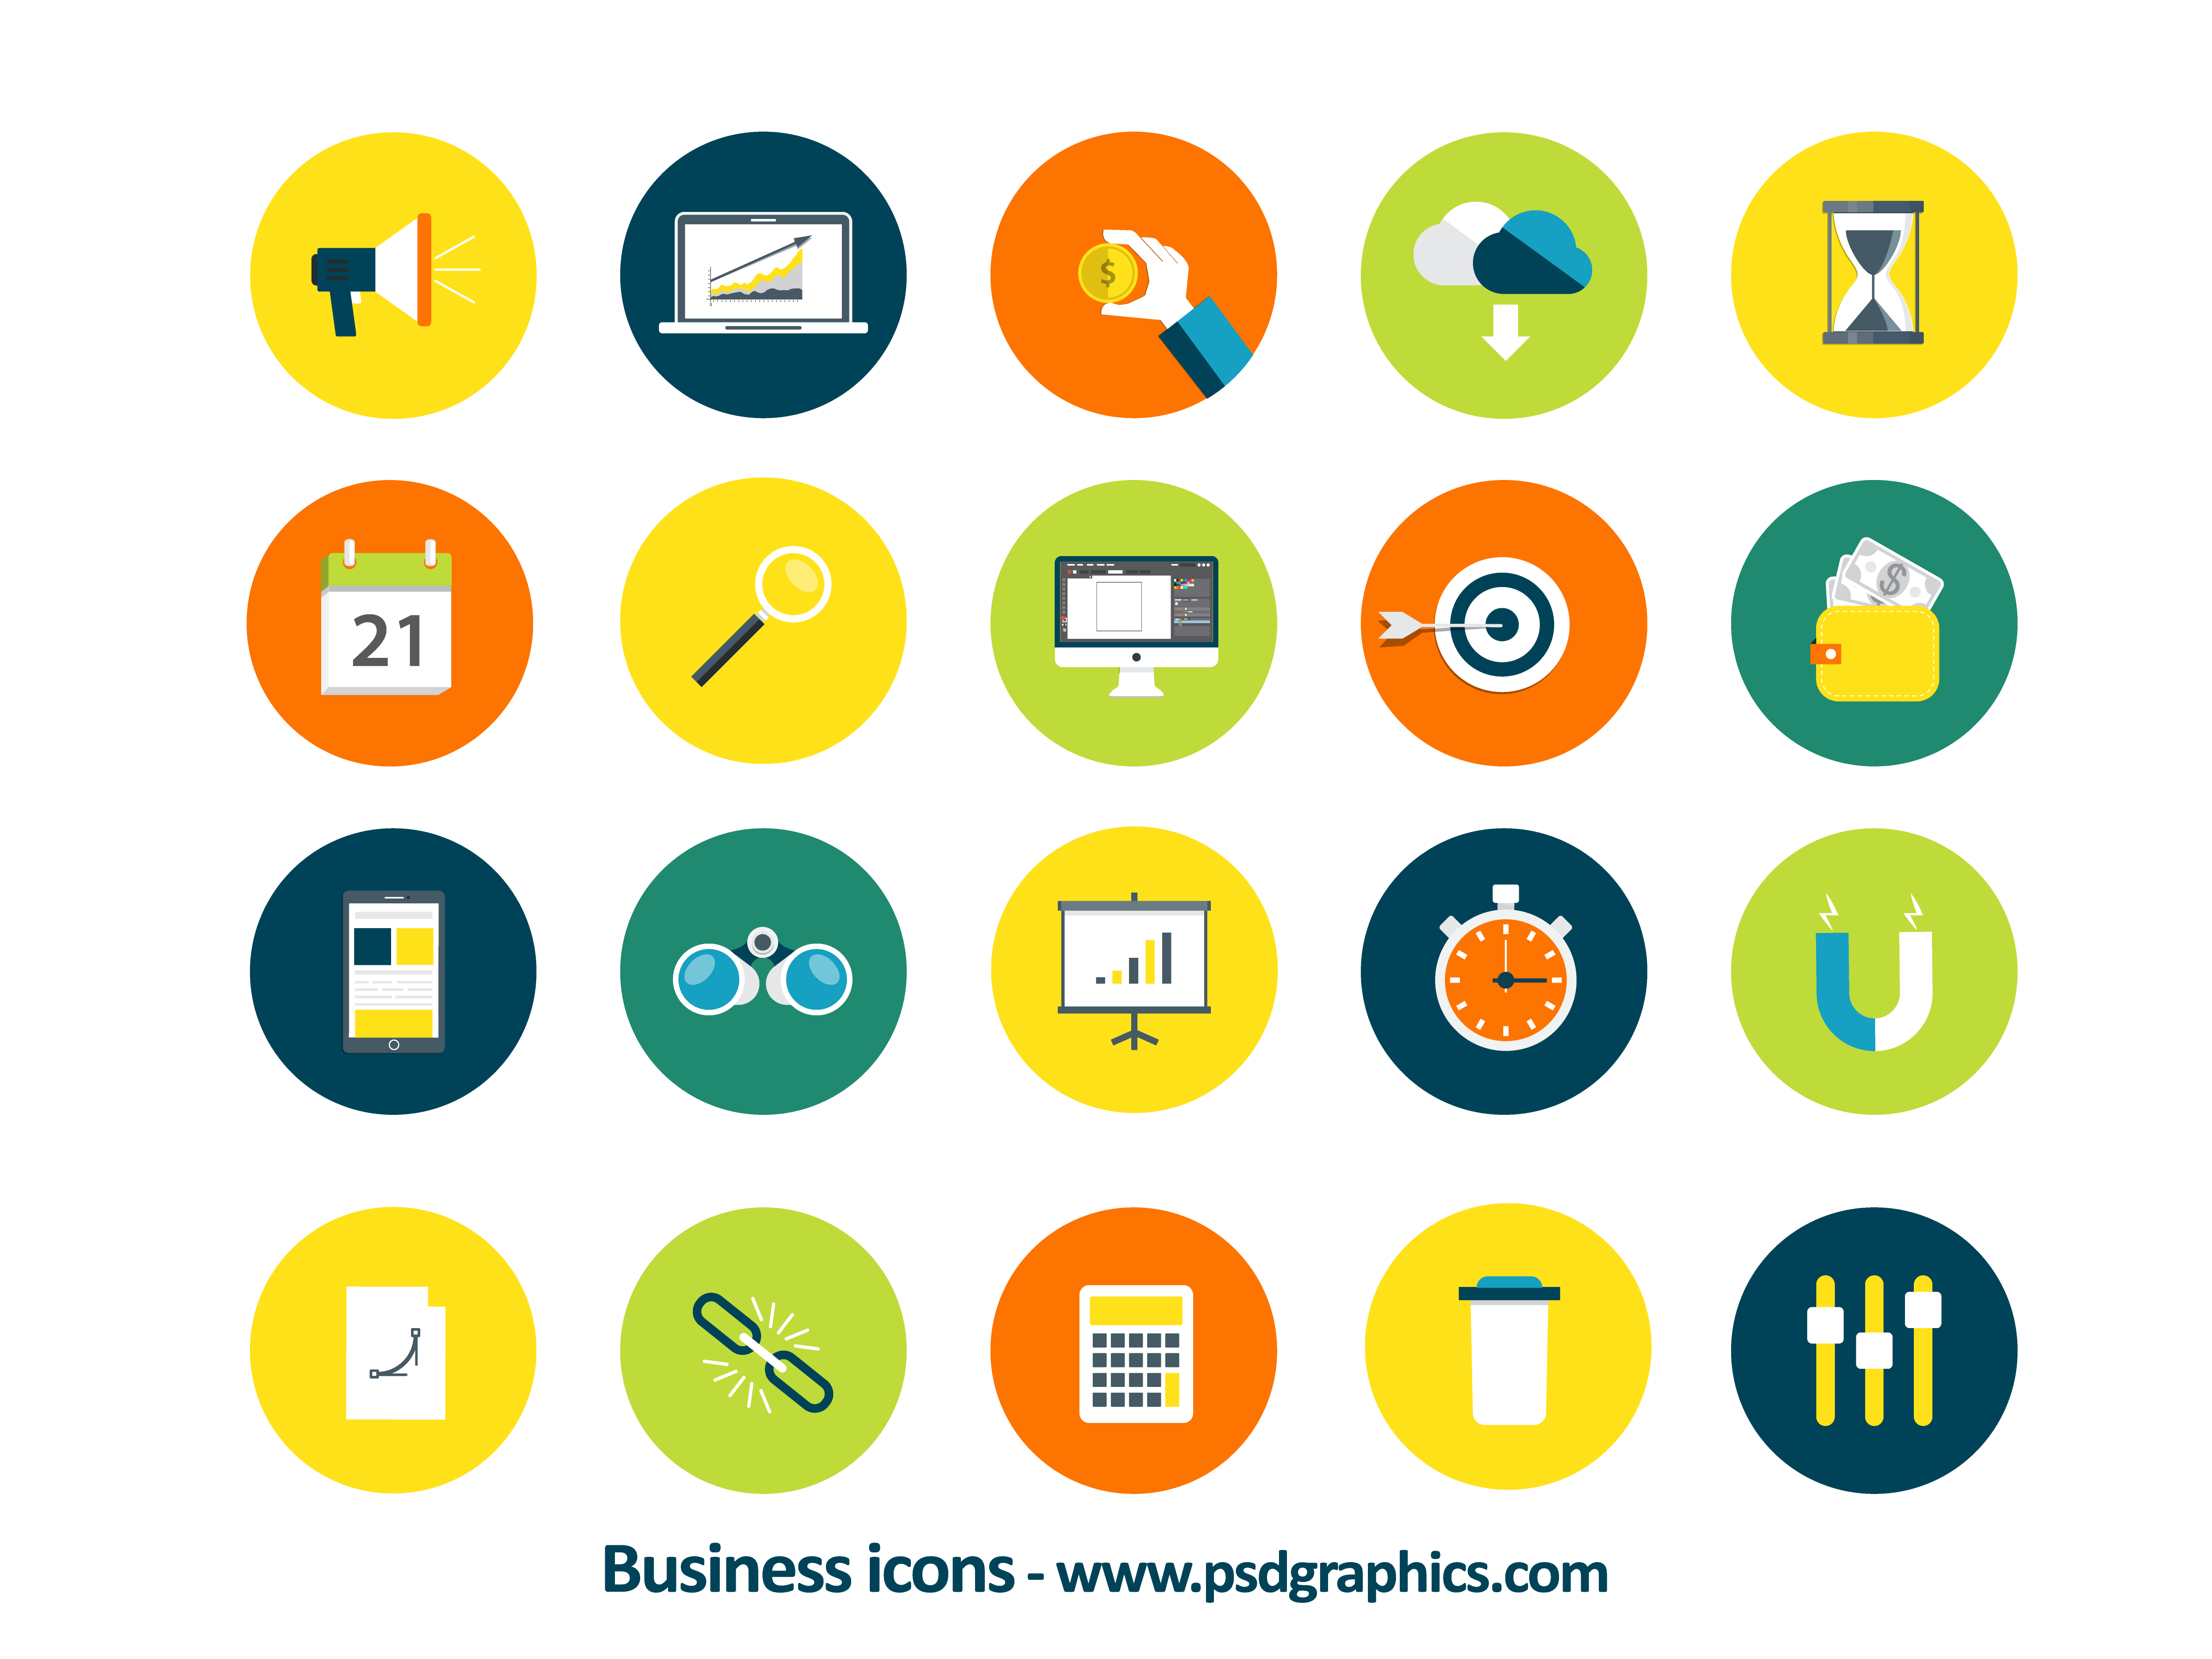 business icons vector psdgraphics